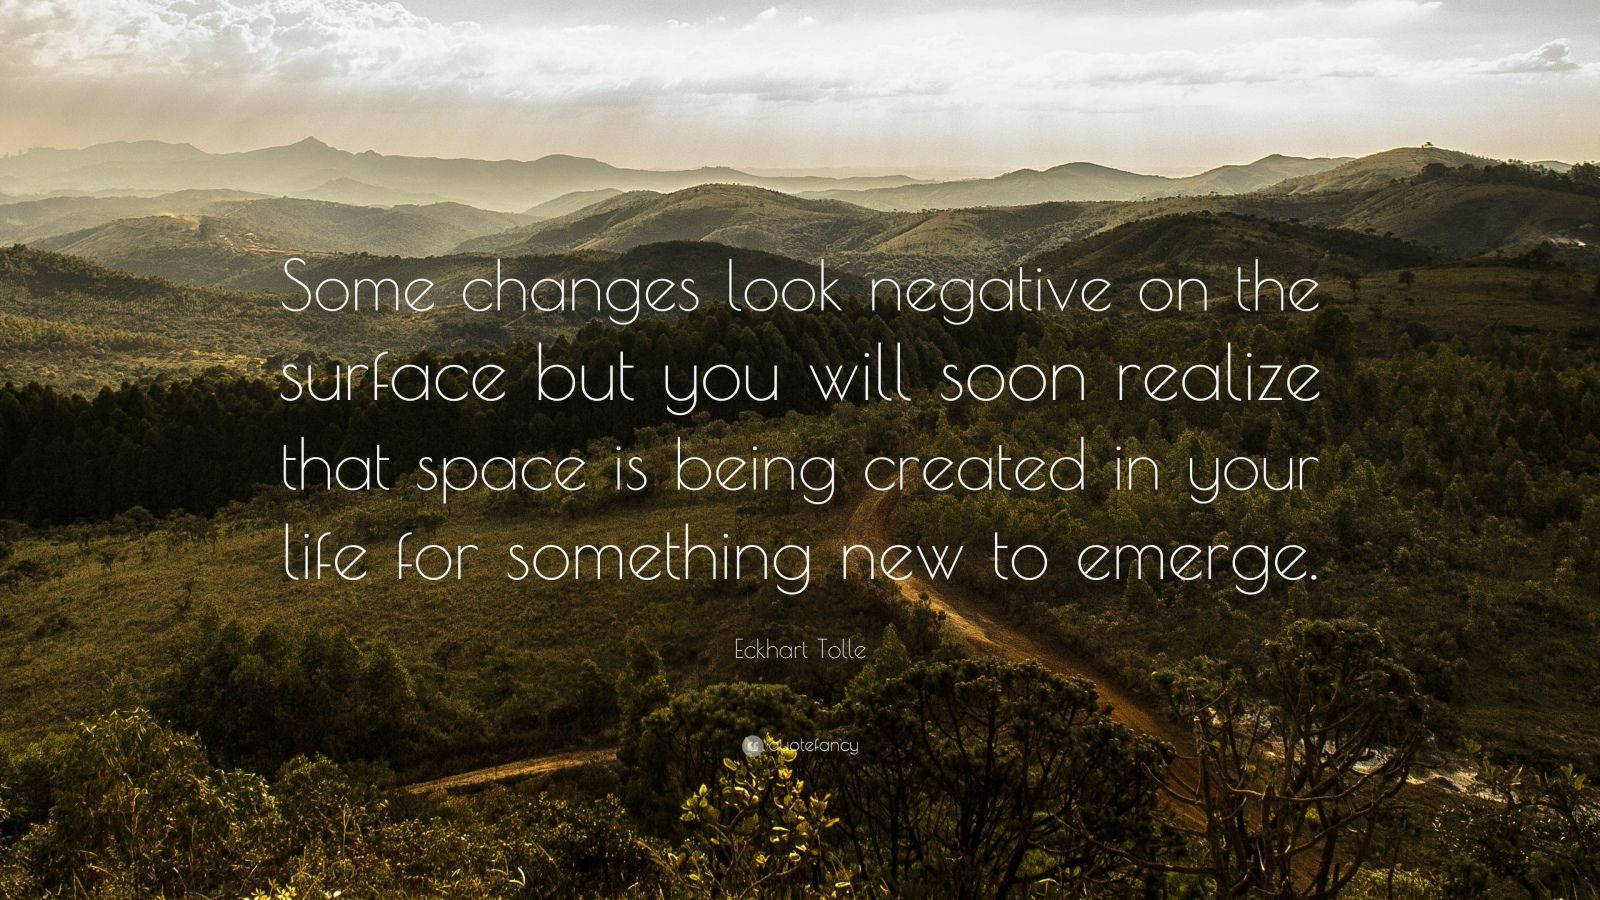 """Eckhart Tolle Quote: """"Some changes look negative on the surface but you will soon realize that space is being created in your life for something new to emerge."""""""